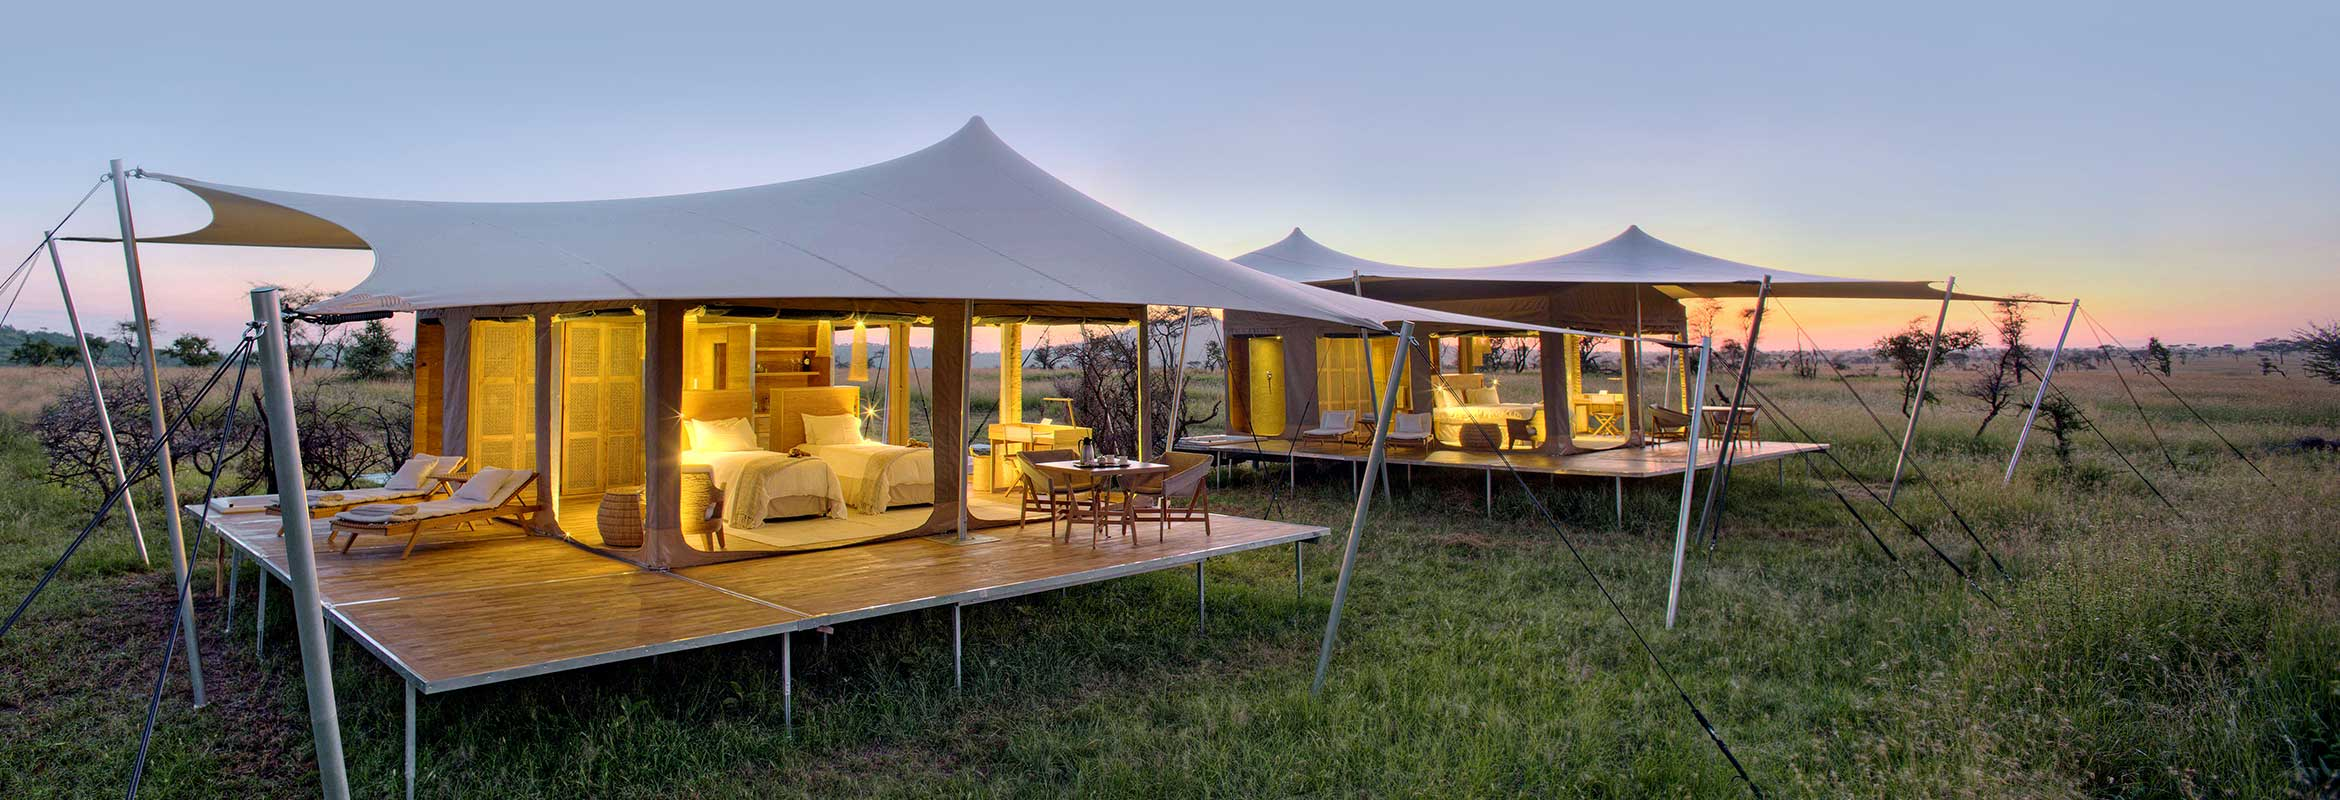 Safari Accommodation Safari Lodges Or Safari Tented